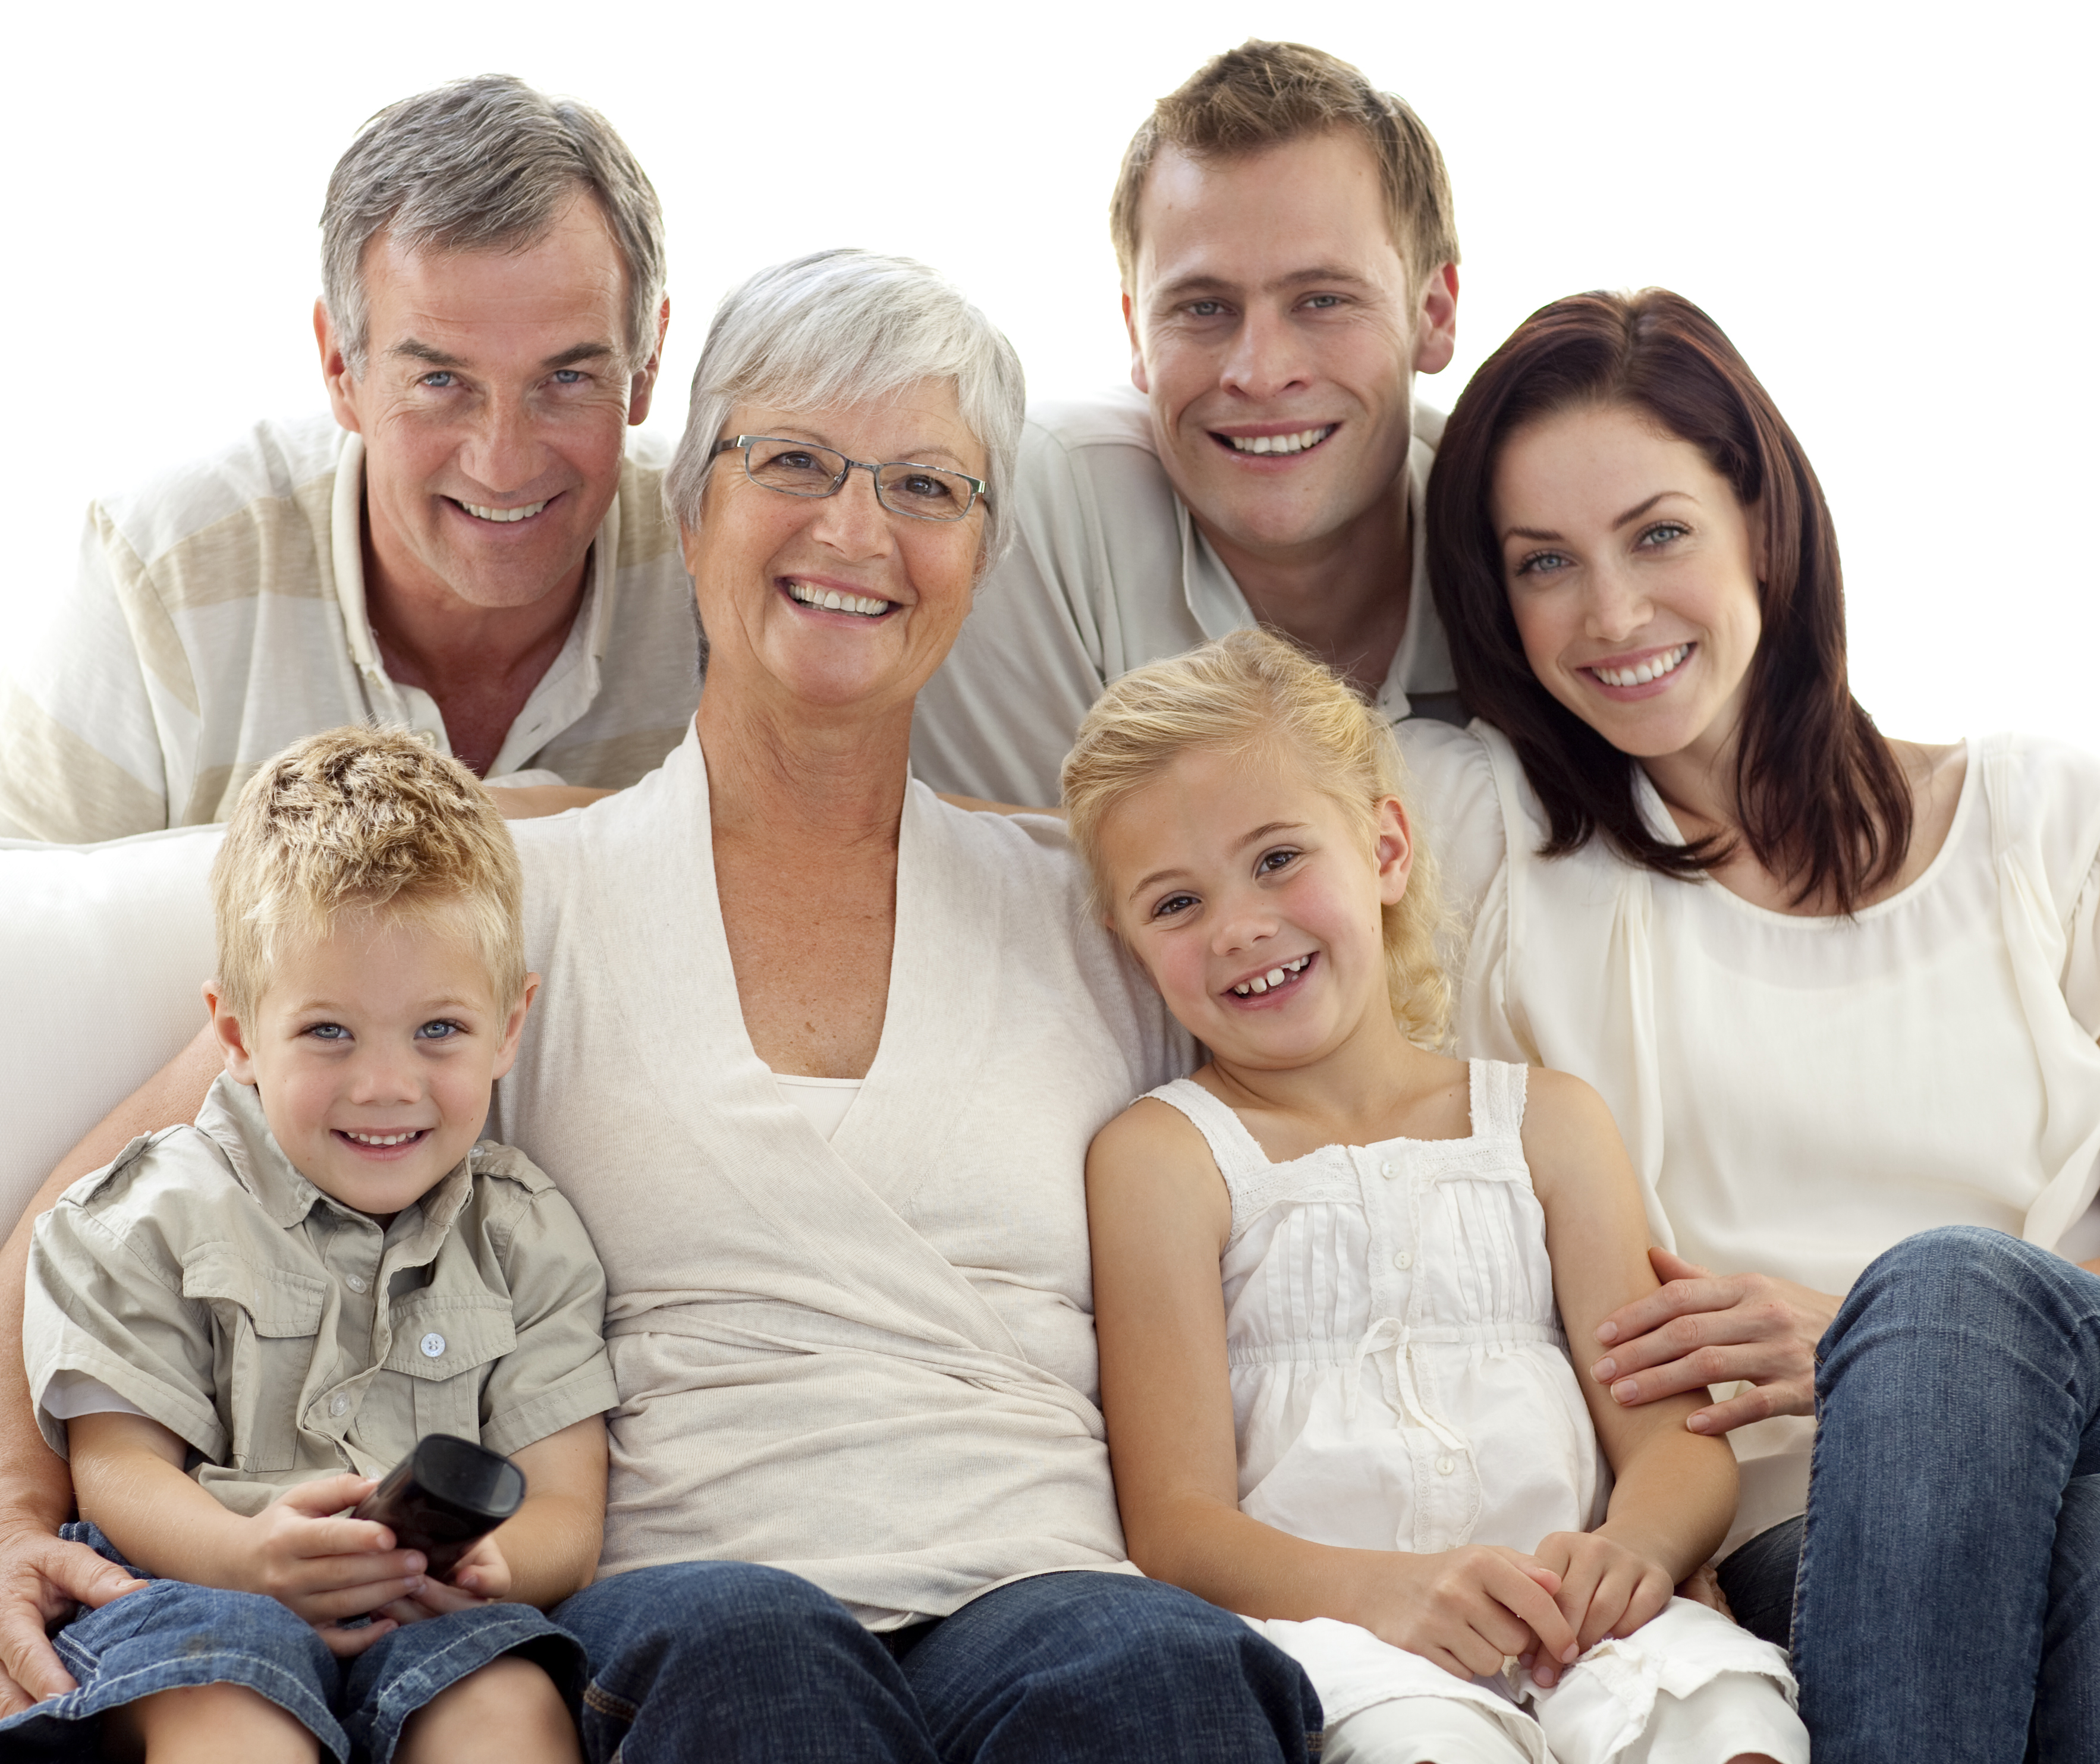 Why is life insurance coverage motivated by love?